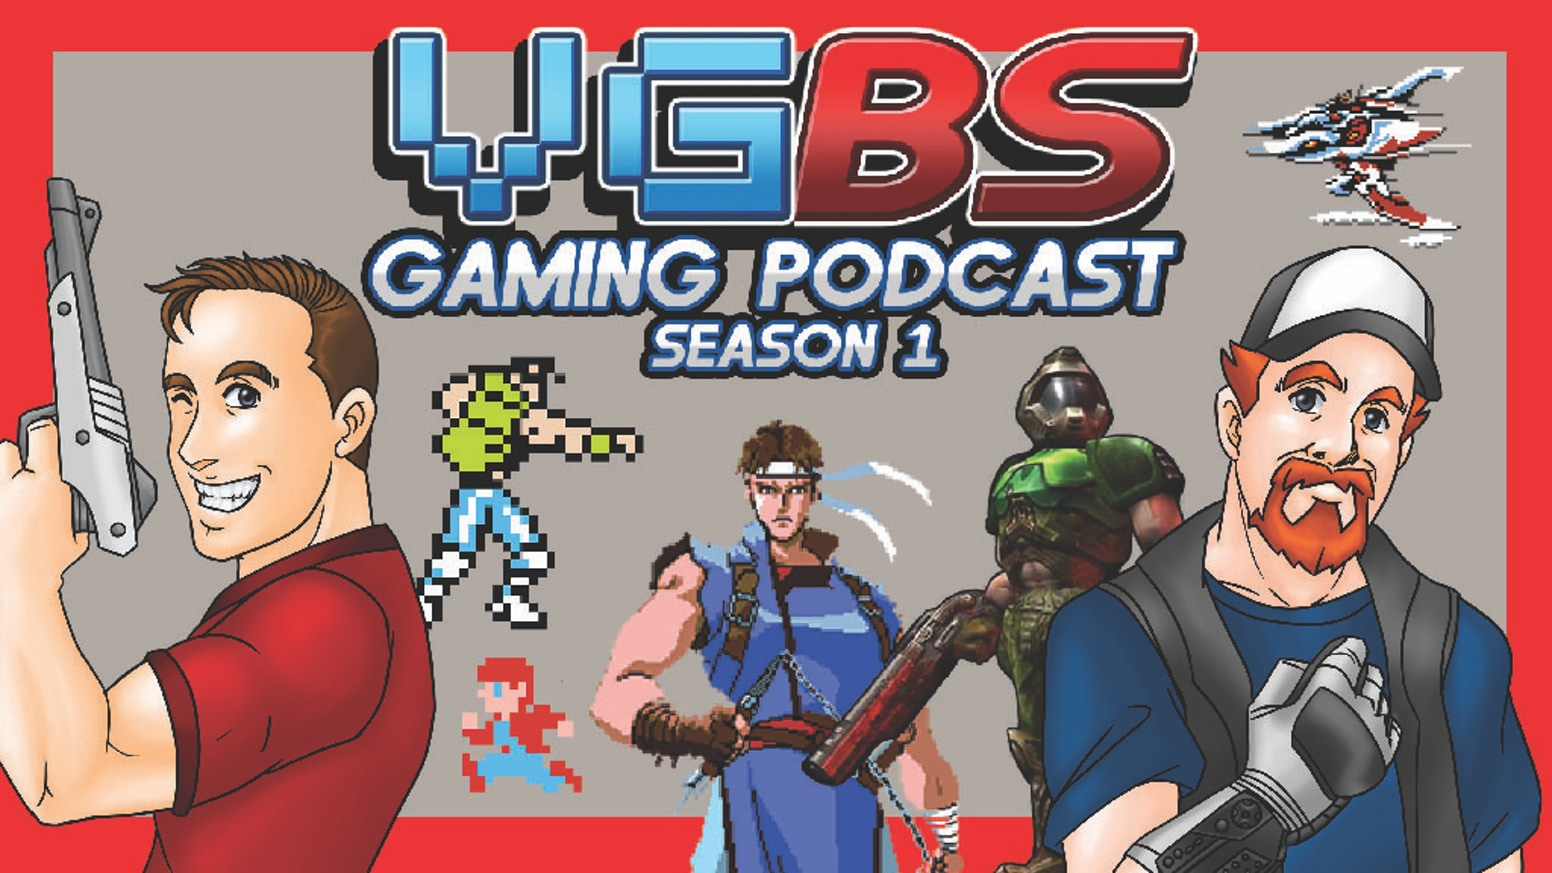 VGBS Gaming Podcast Season 1 is being released physically on USB with a playable NES Cartridge, Box and Manual. Come join the madness!